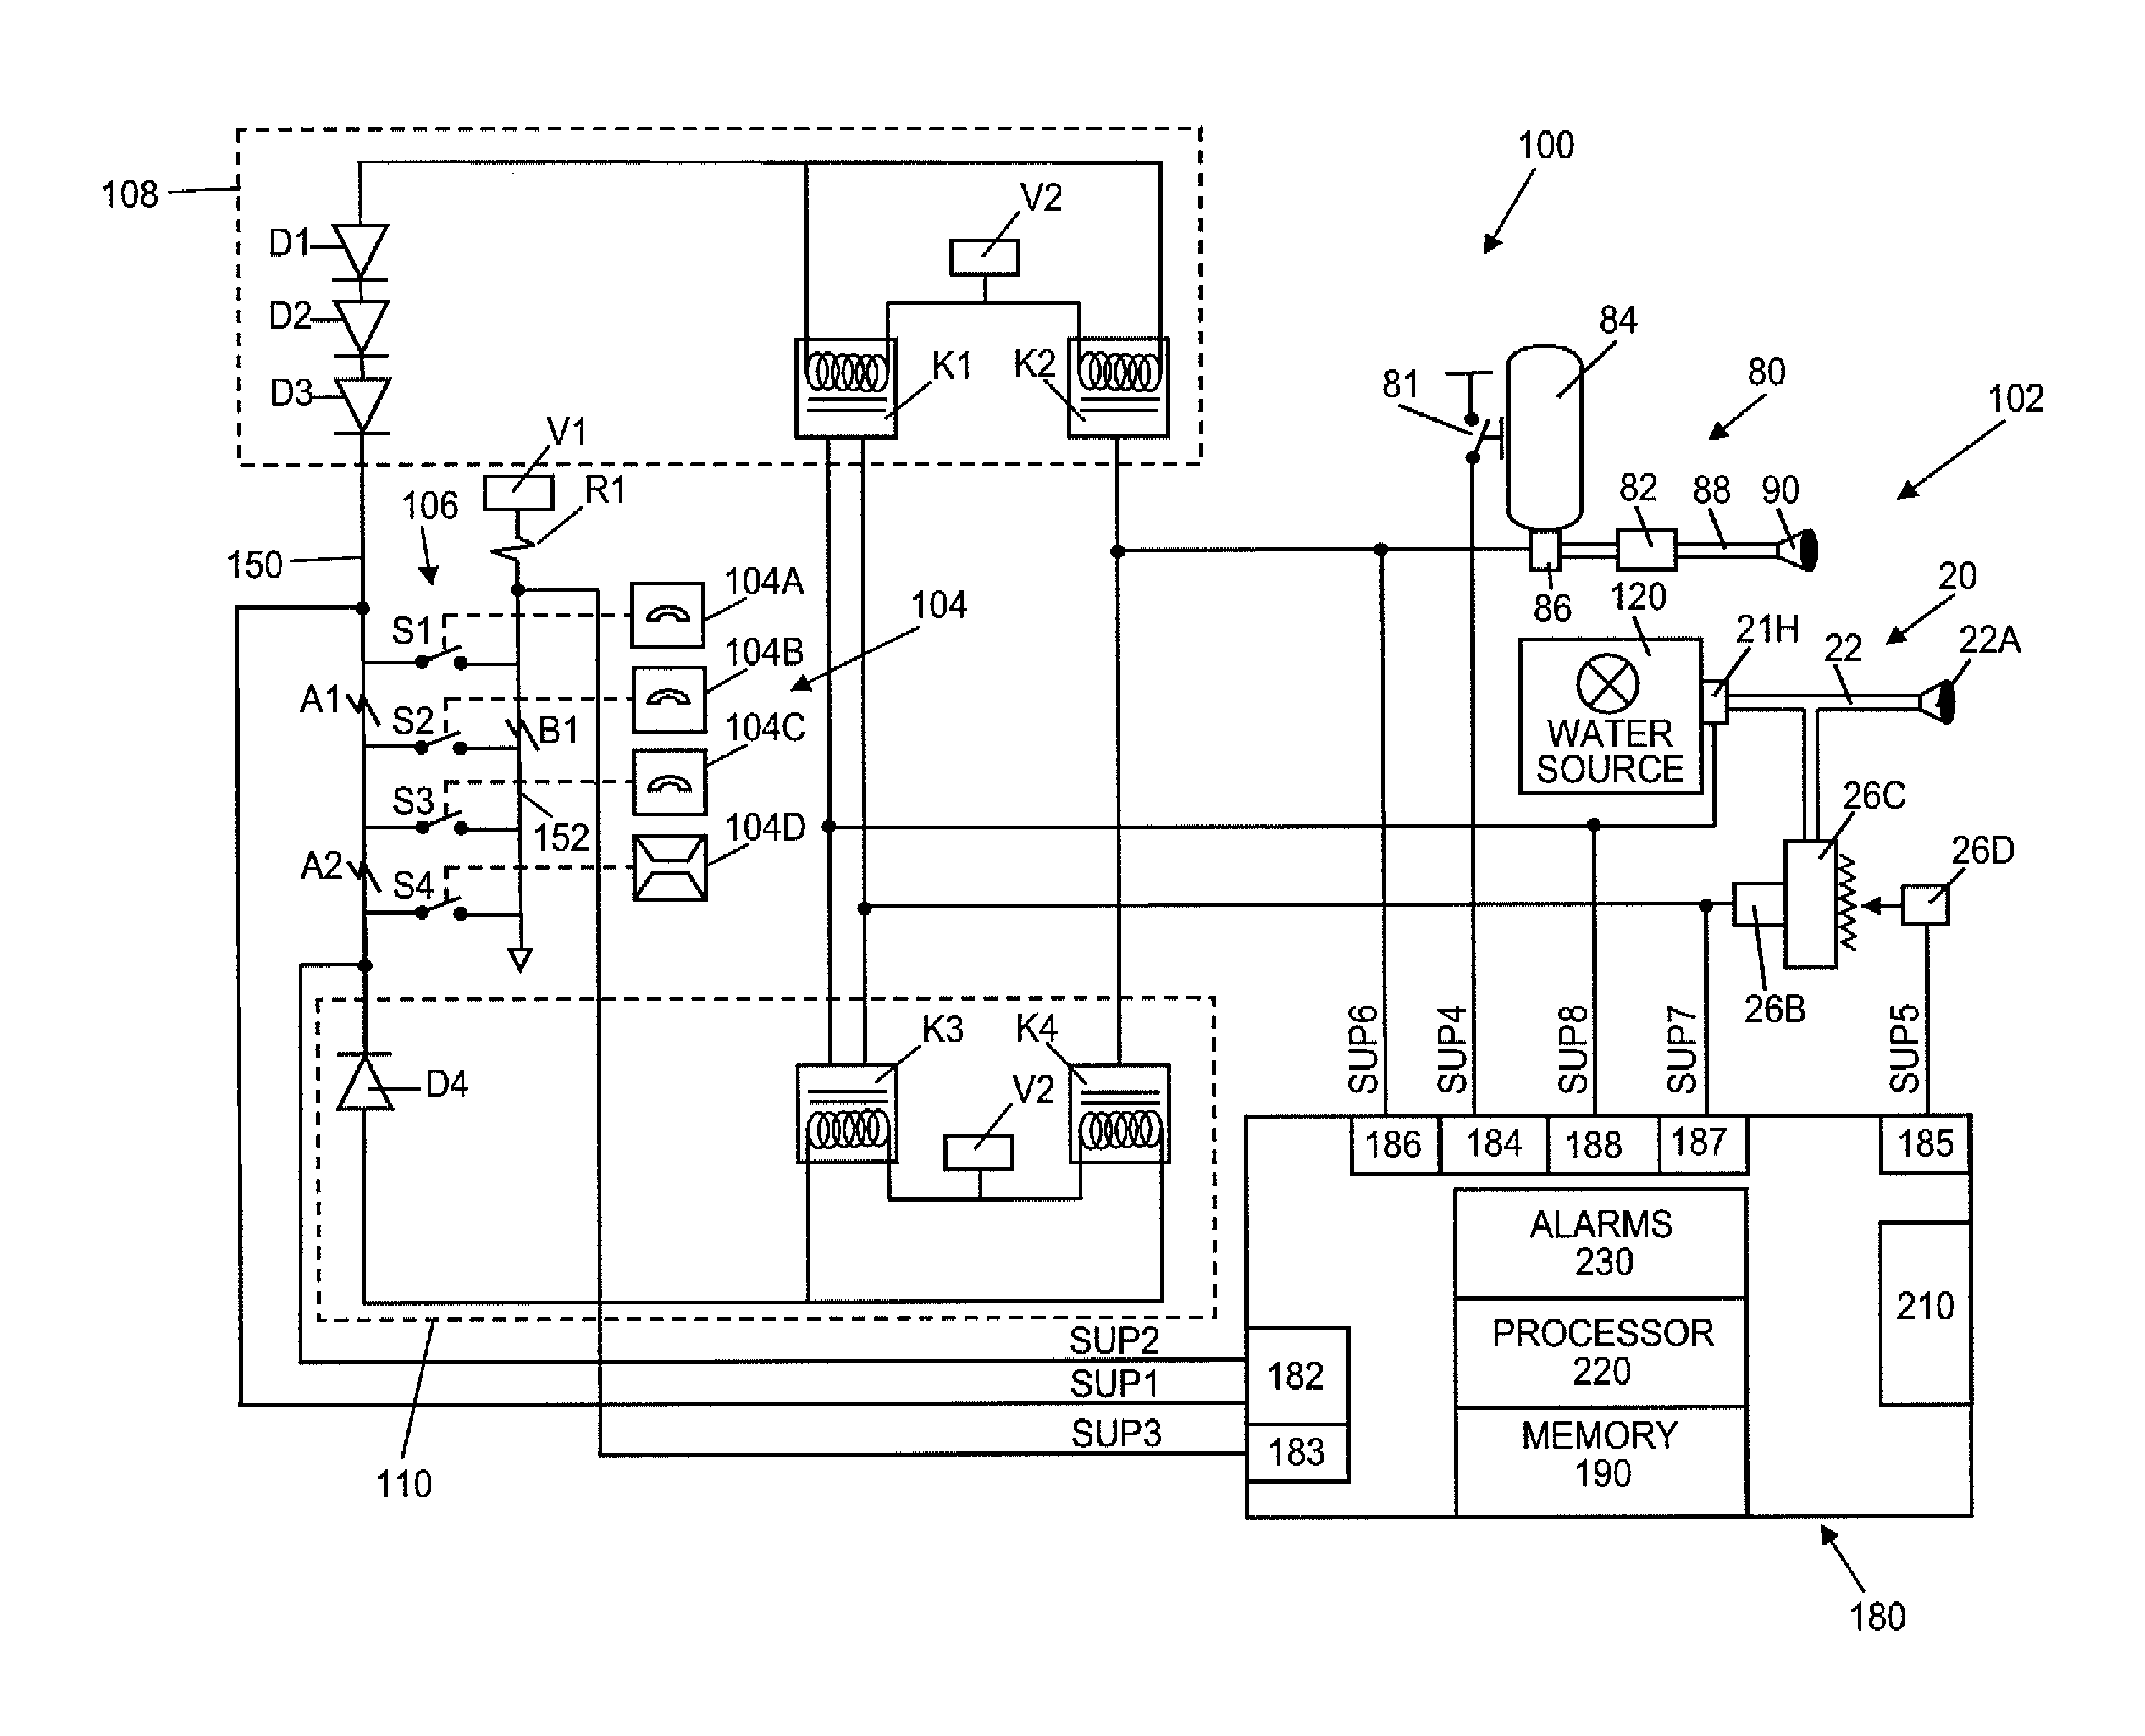 T38 Briggs Engine Wiring Diagram furthermore Automatic Plant Watering Reminder also Warbling Alarm Circuit With Tone Generator additionally 6100 Single Loop Fire Alarm Panel furthermore Multiplexer And Demultiplexer. on alarm system circuit diagram